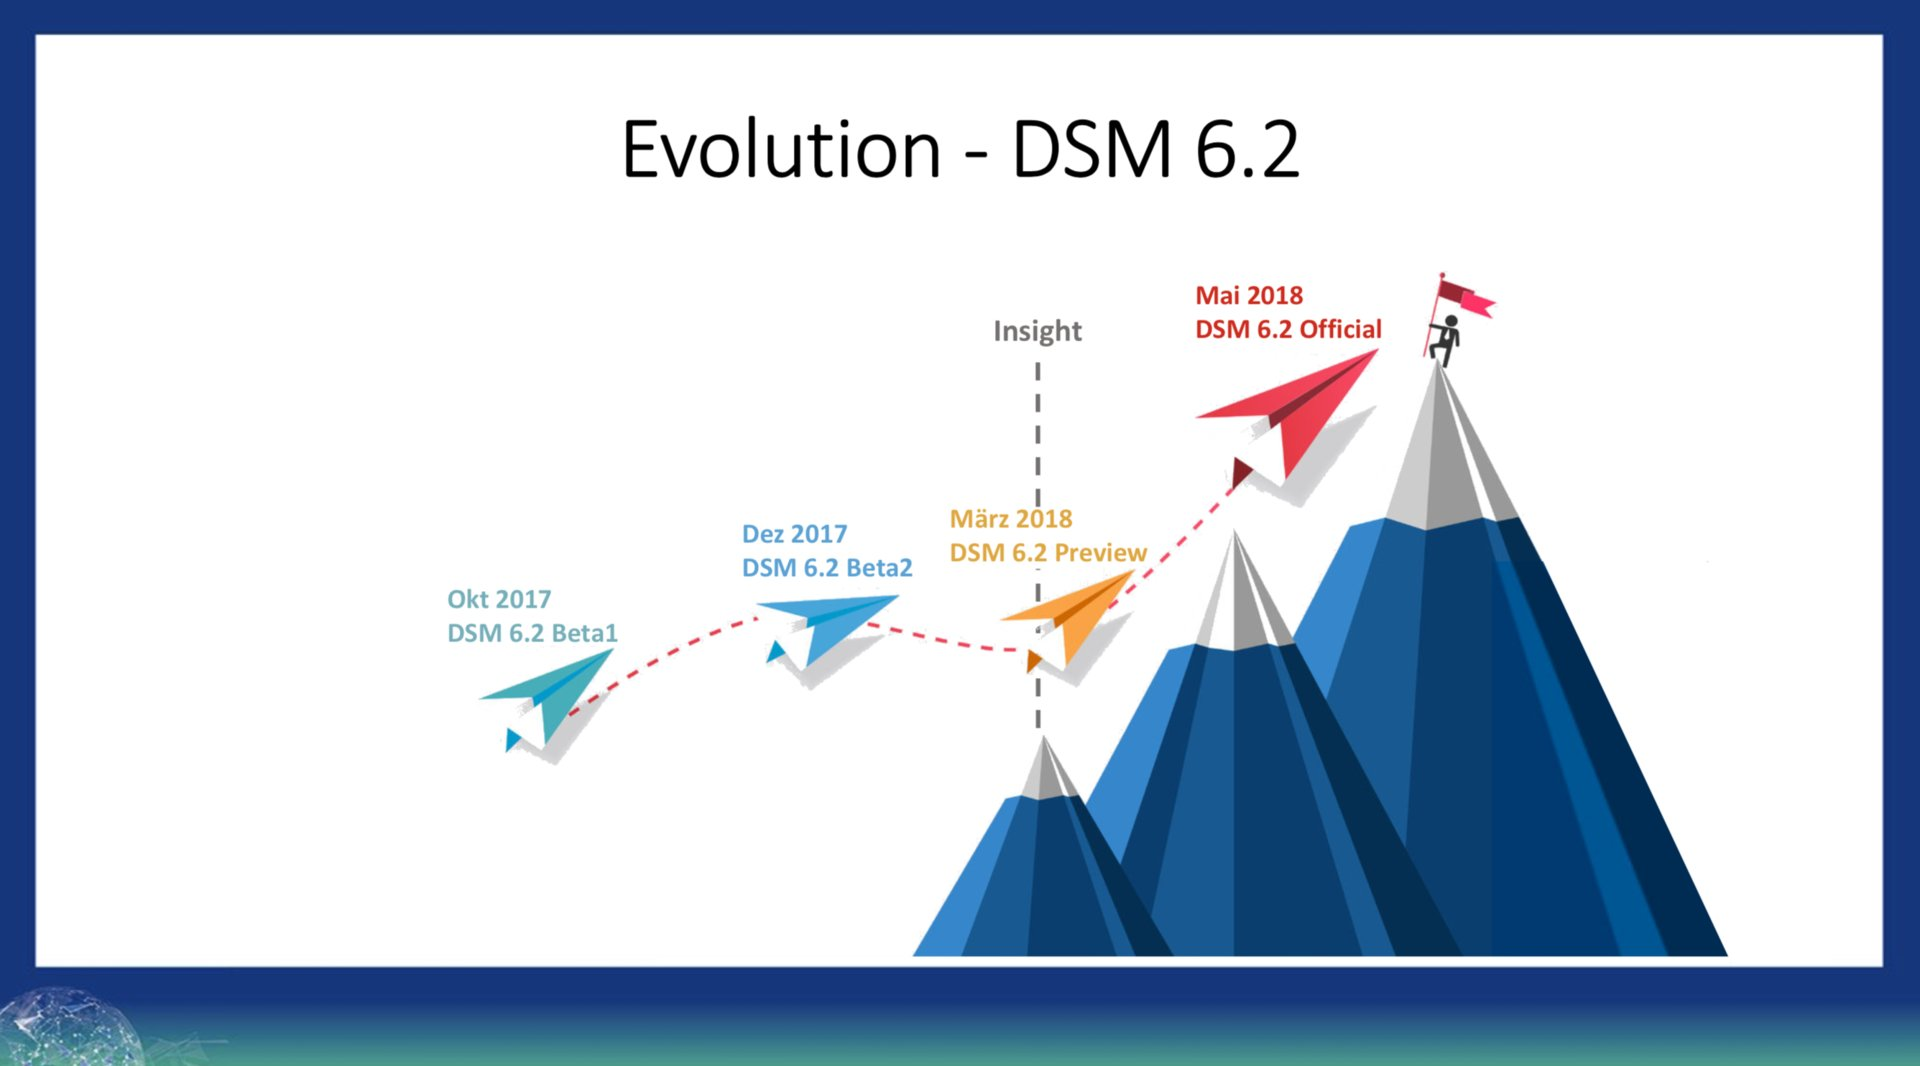 Synology DSM 6.2 Preview